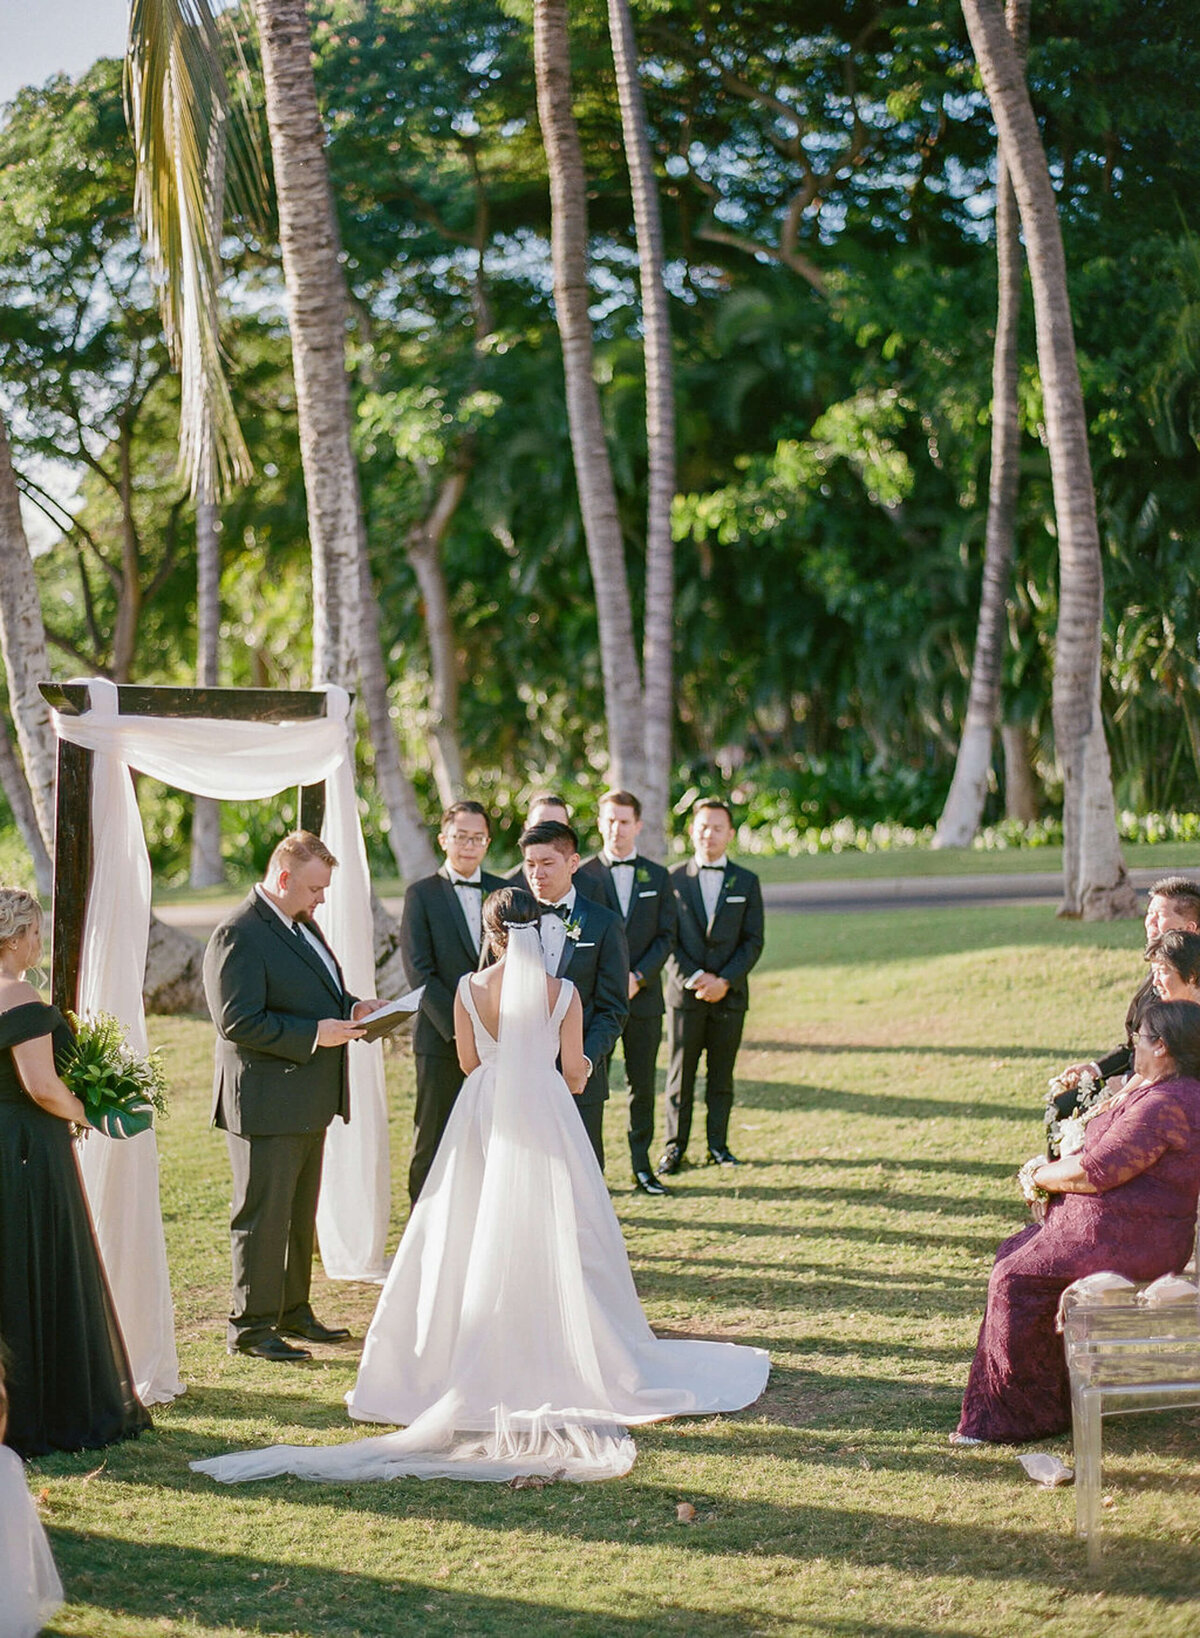 maui-hawaii-wedding-clay-austin-photography-30